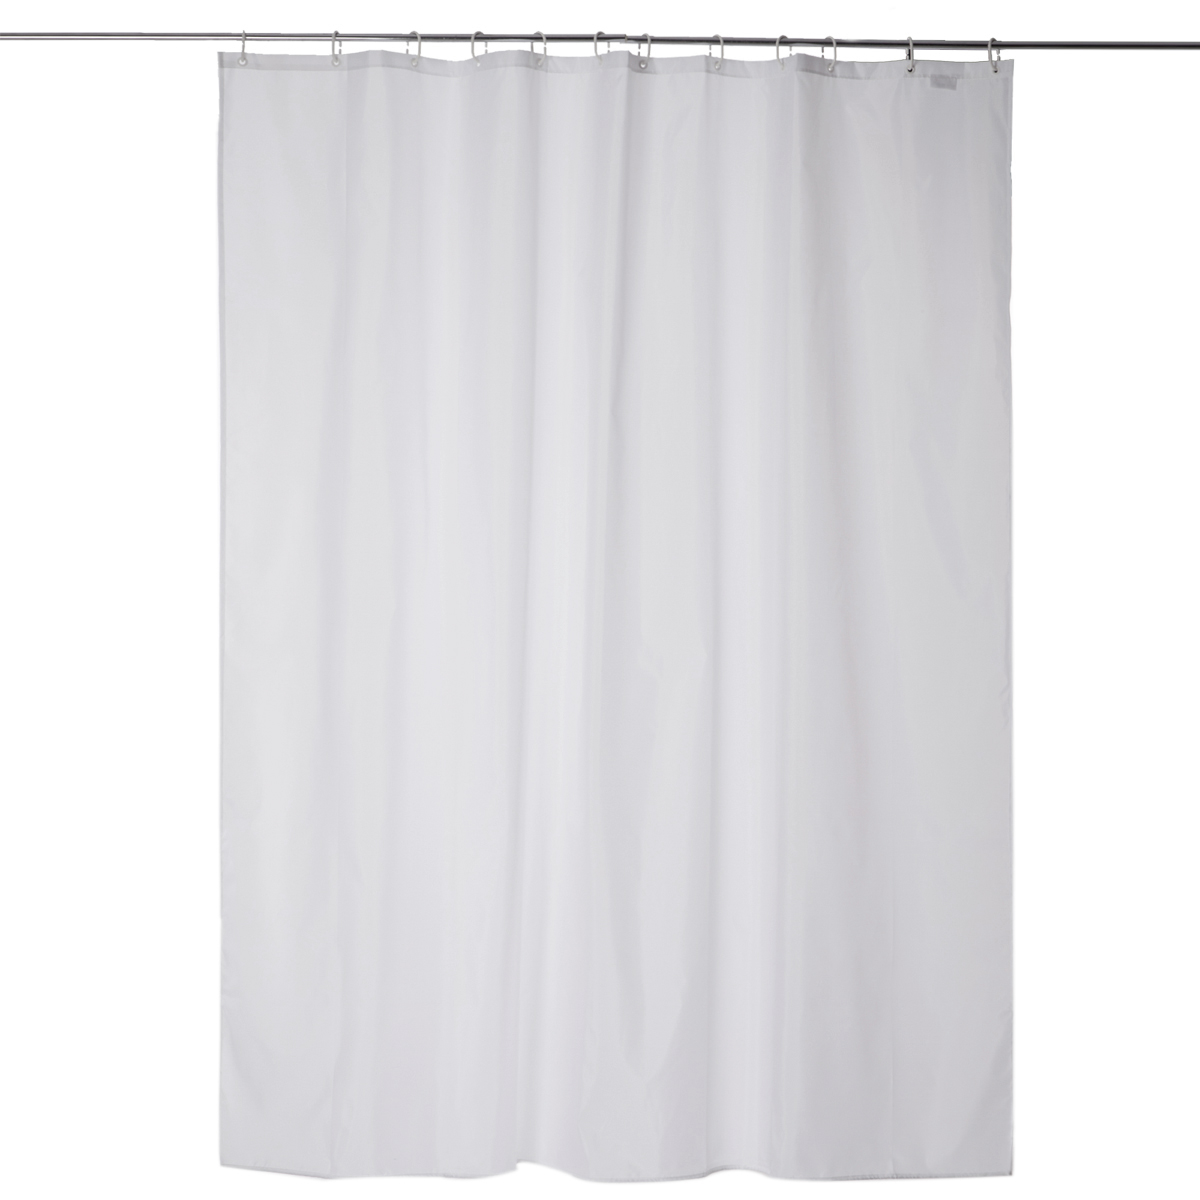 White curtain bathroom shower curtain